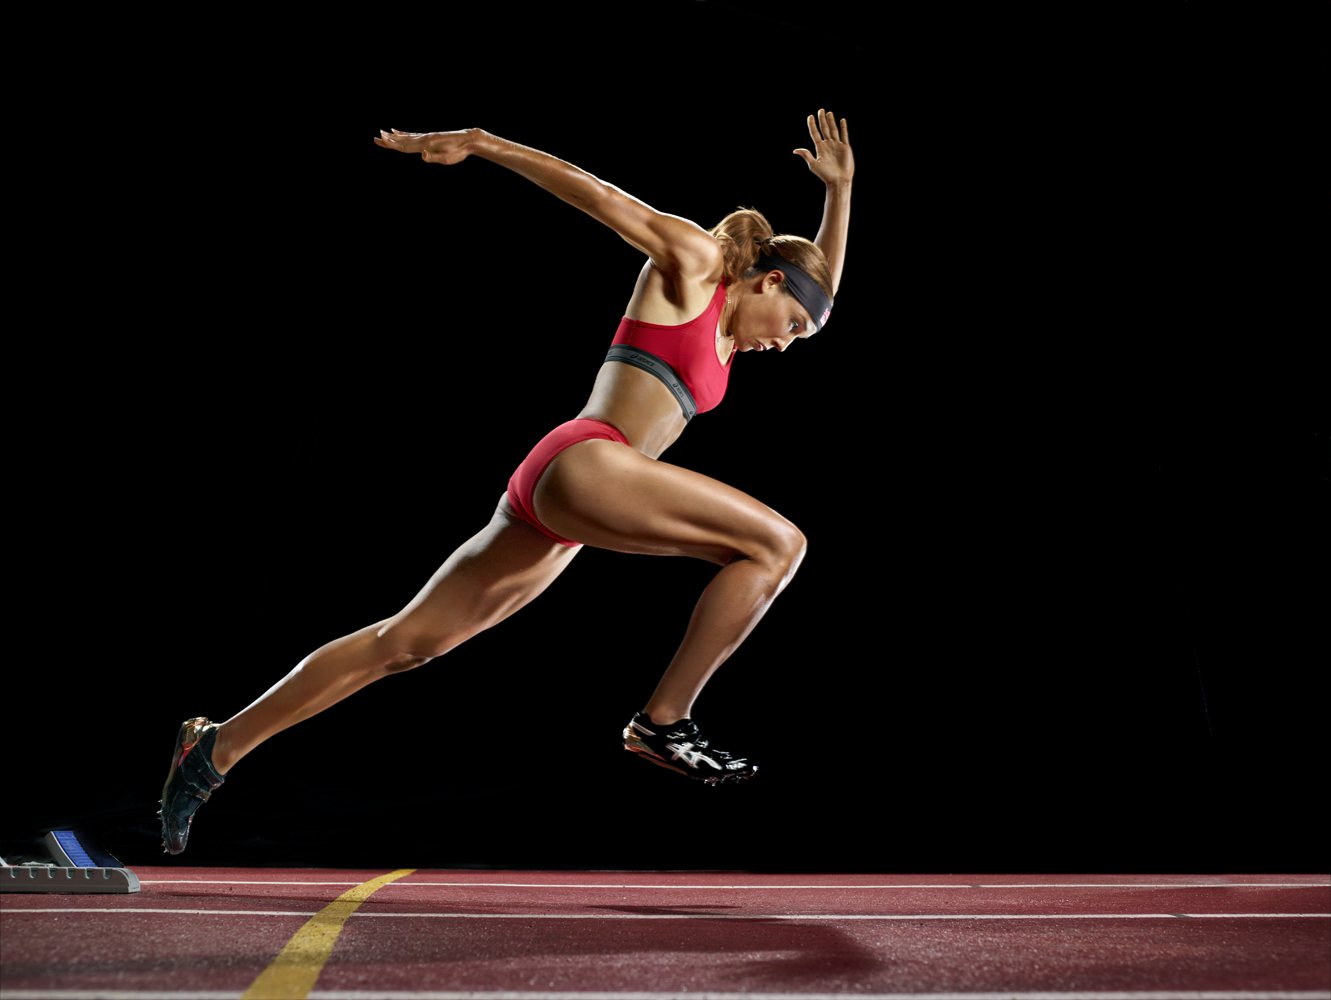 Track and field athlete Lolo Jones trains for the London Games in Baton Rouge, La.